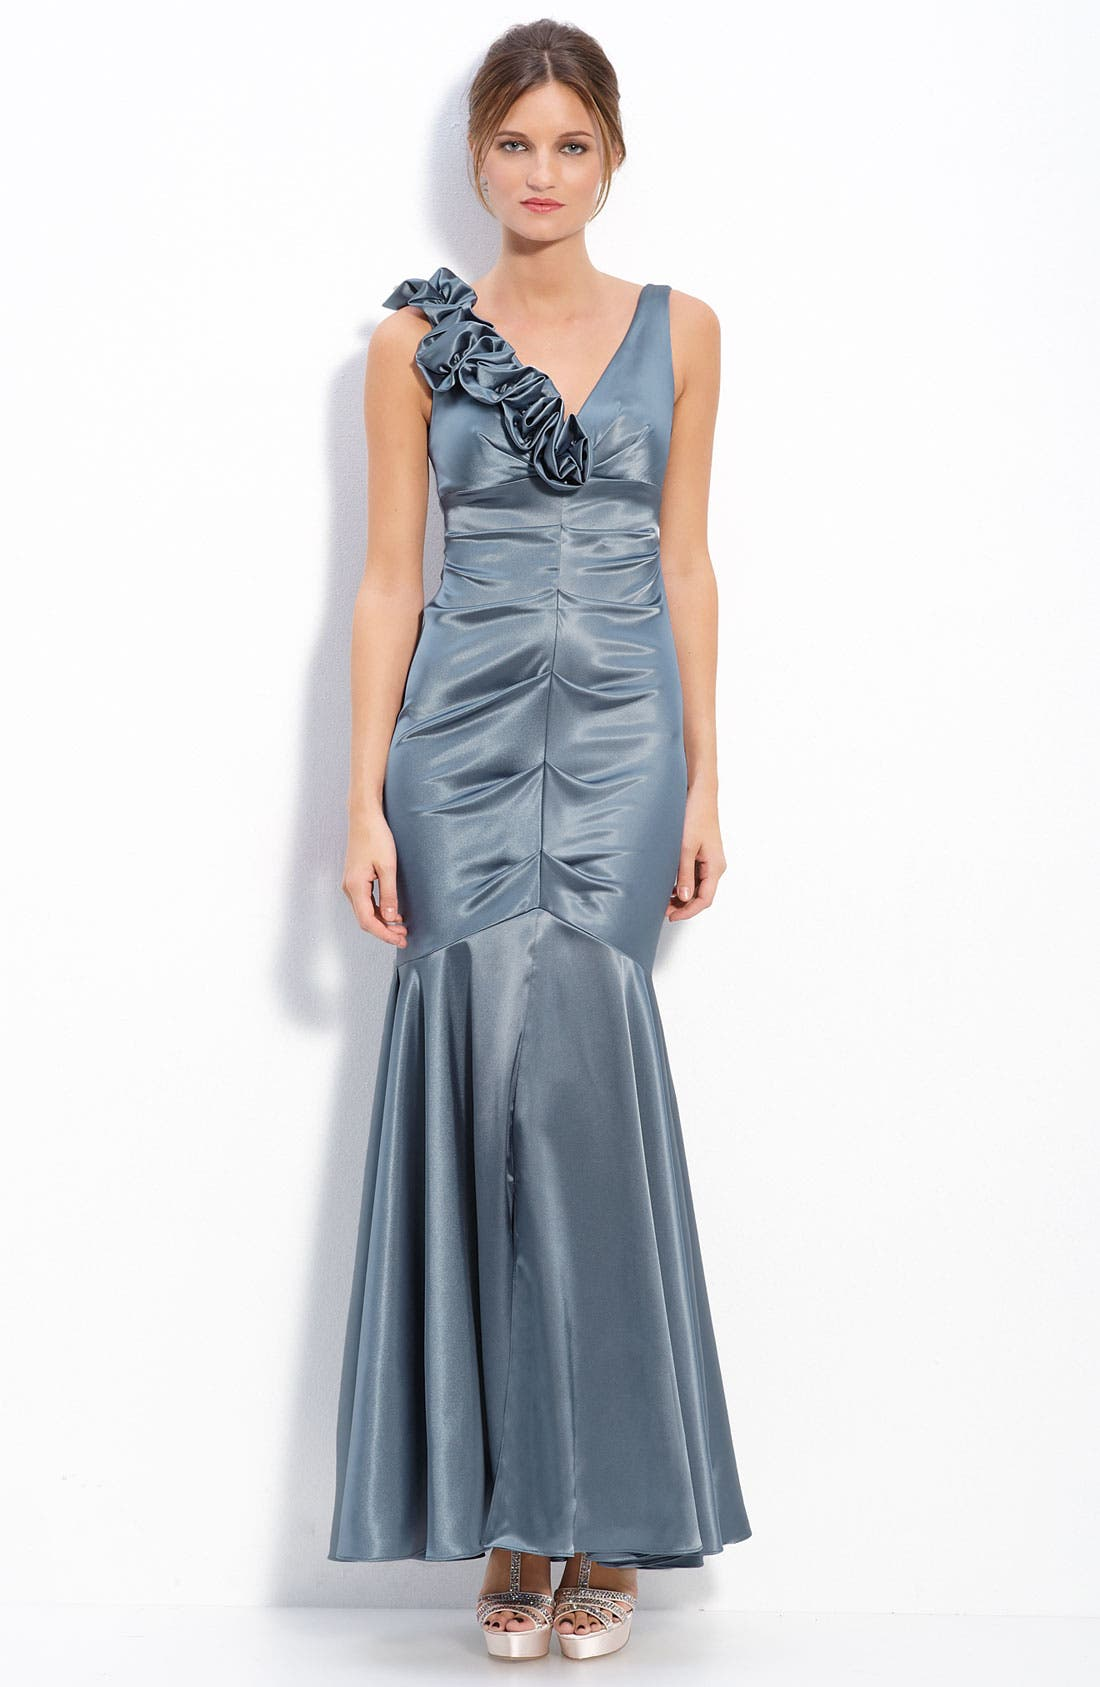 Main Image - Xscape Floral Ruffle Stretch Satin Ruched Mermaid Gown